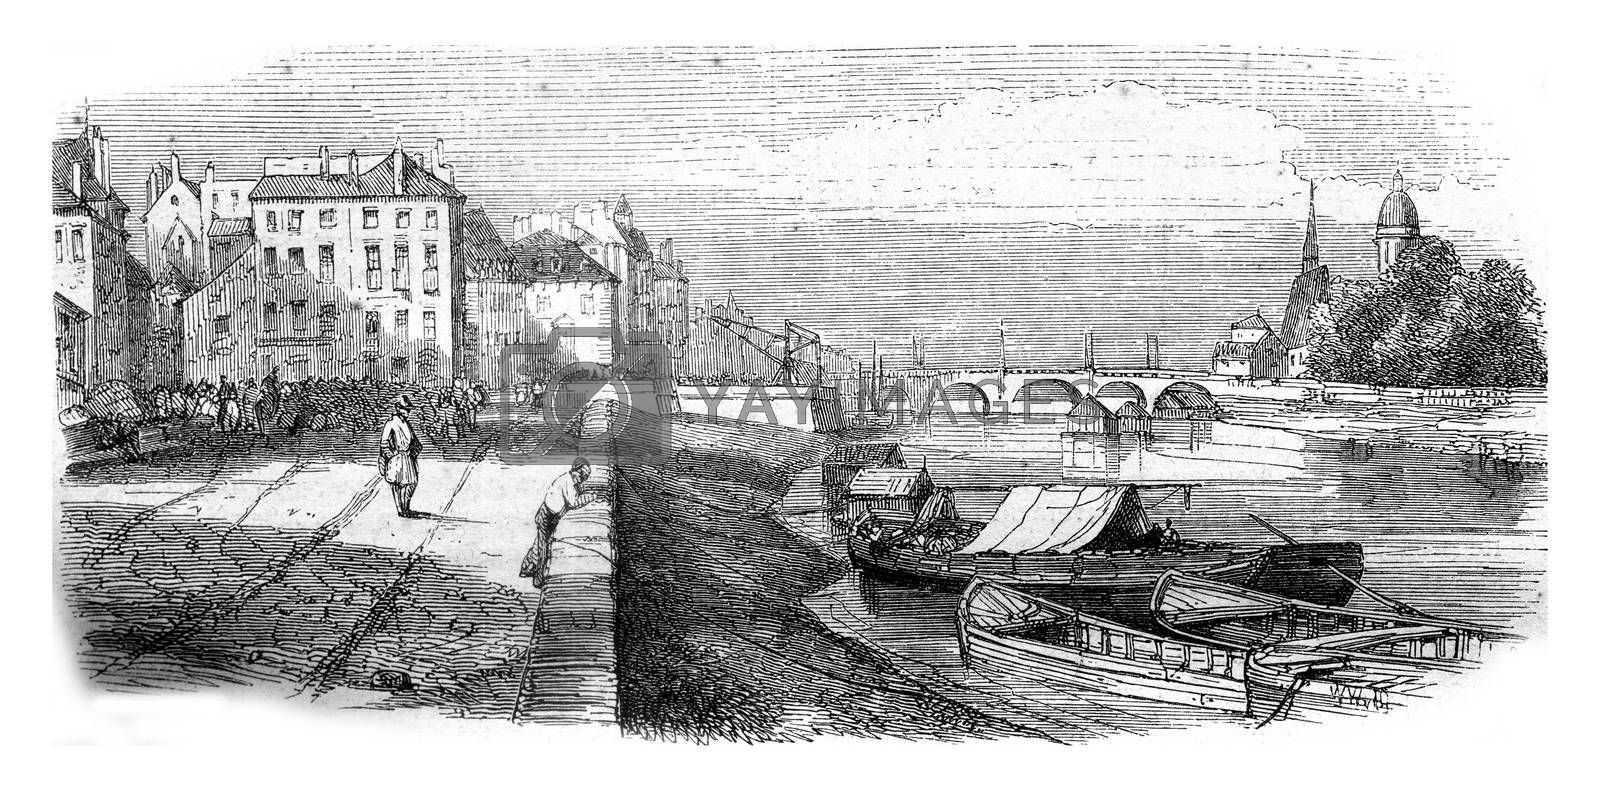 Chalons sur Saone, department of Saone et Loire, view from the dock, vintage engraved illustration. Magasin Pittoresque 1845.